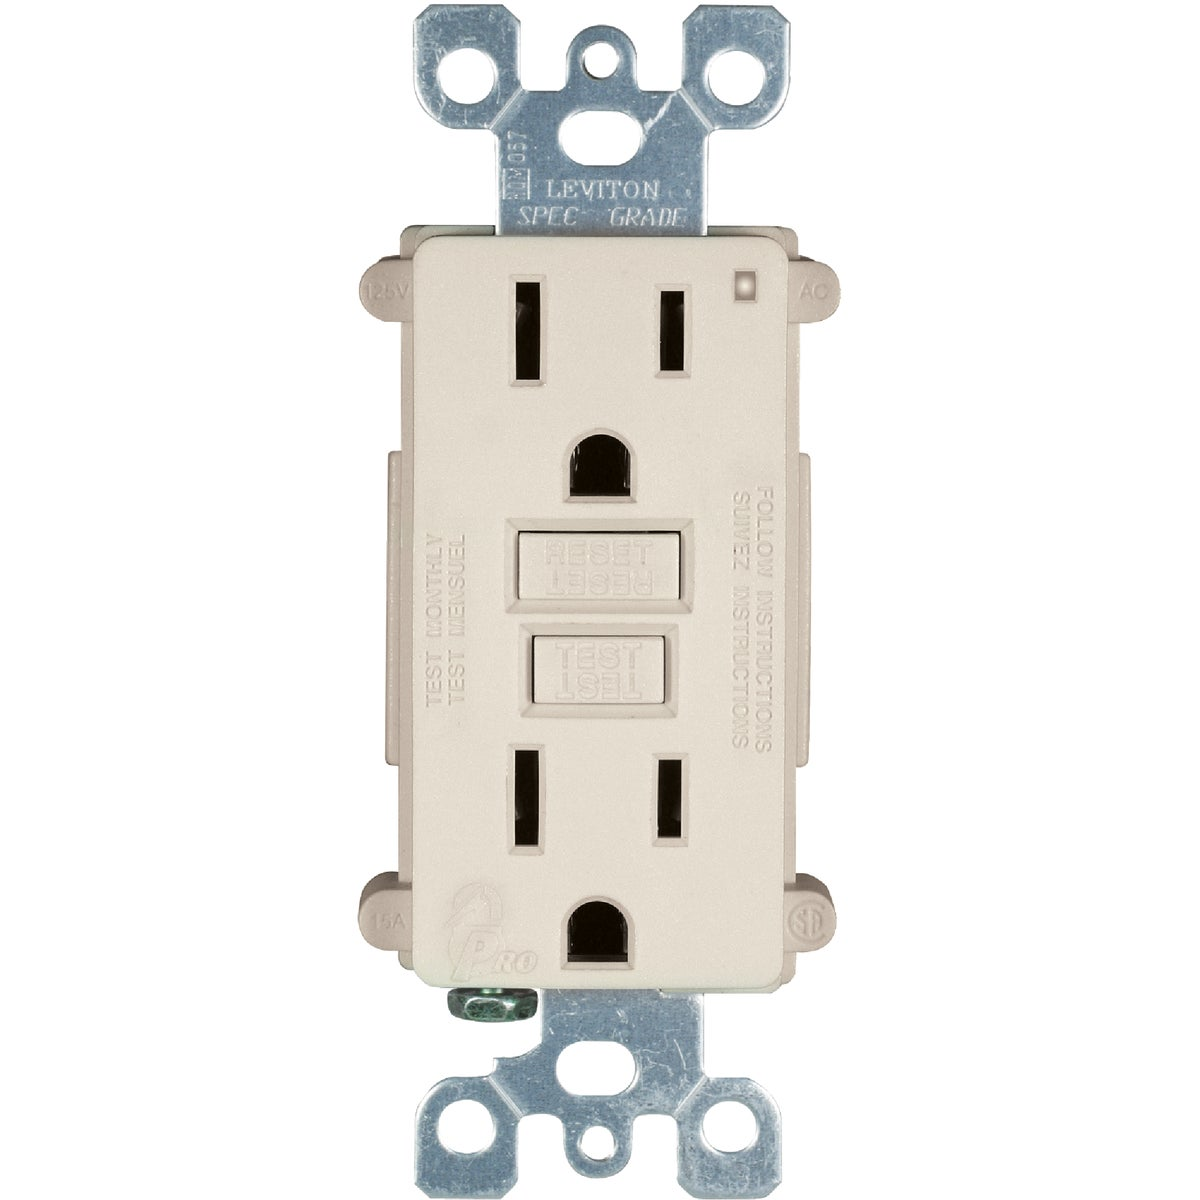 LT ALM 3 PACK 15A GFCI - M06-X7599-3T by Leviton Mfg Co